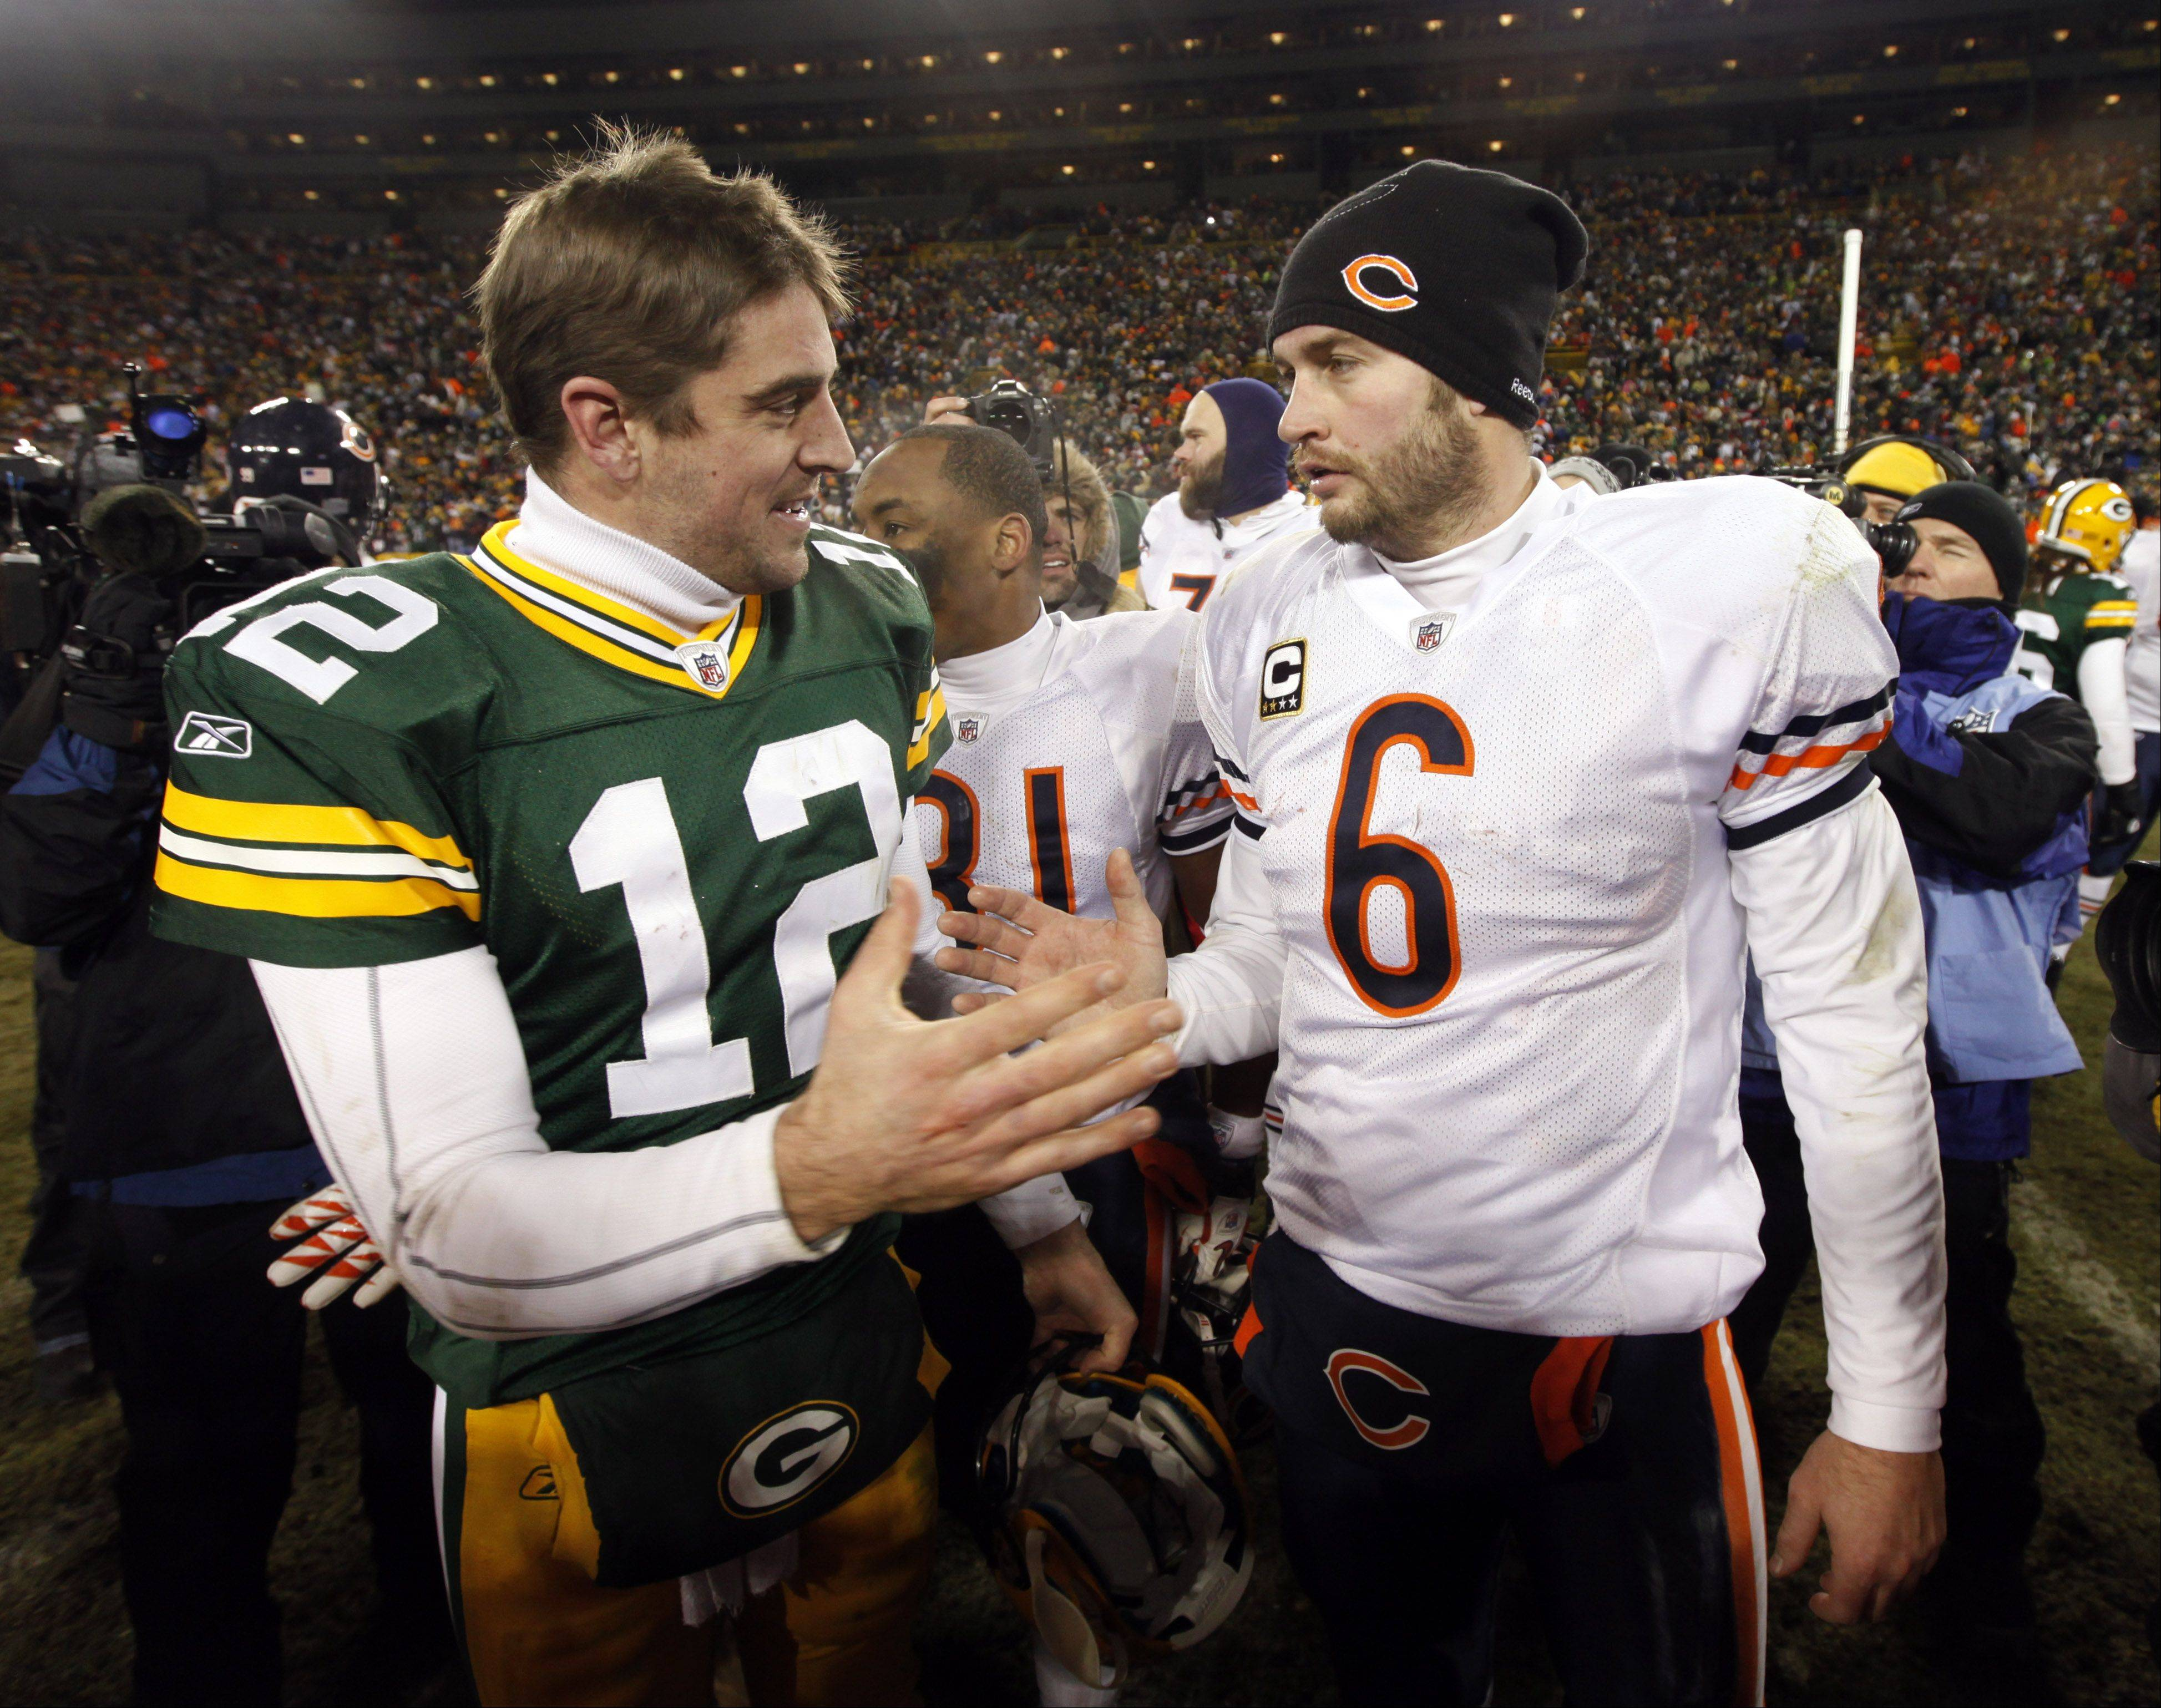 The quarterback who plays the best -- the Packers' Aaron Rodgers or the Bears' Jay Cutler -- will go a long way to determining the outcome of today's showdown at Soldier Field.